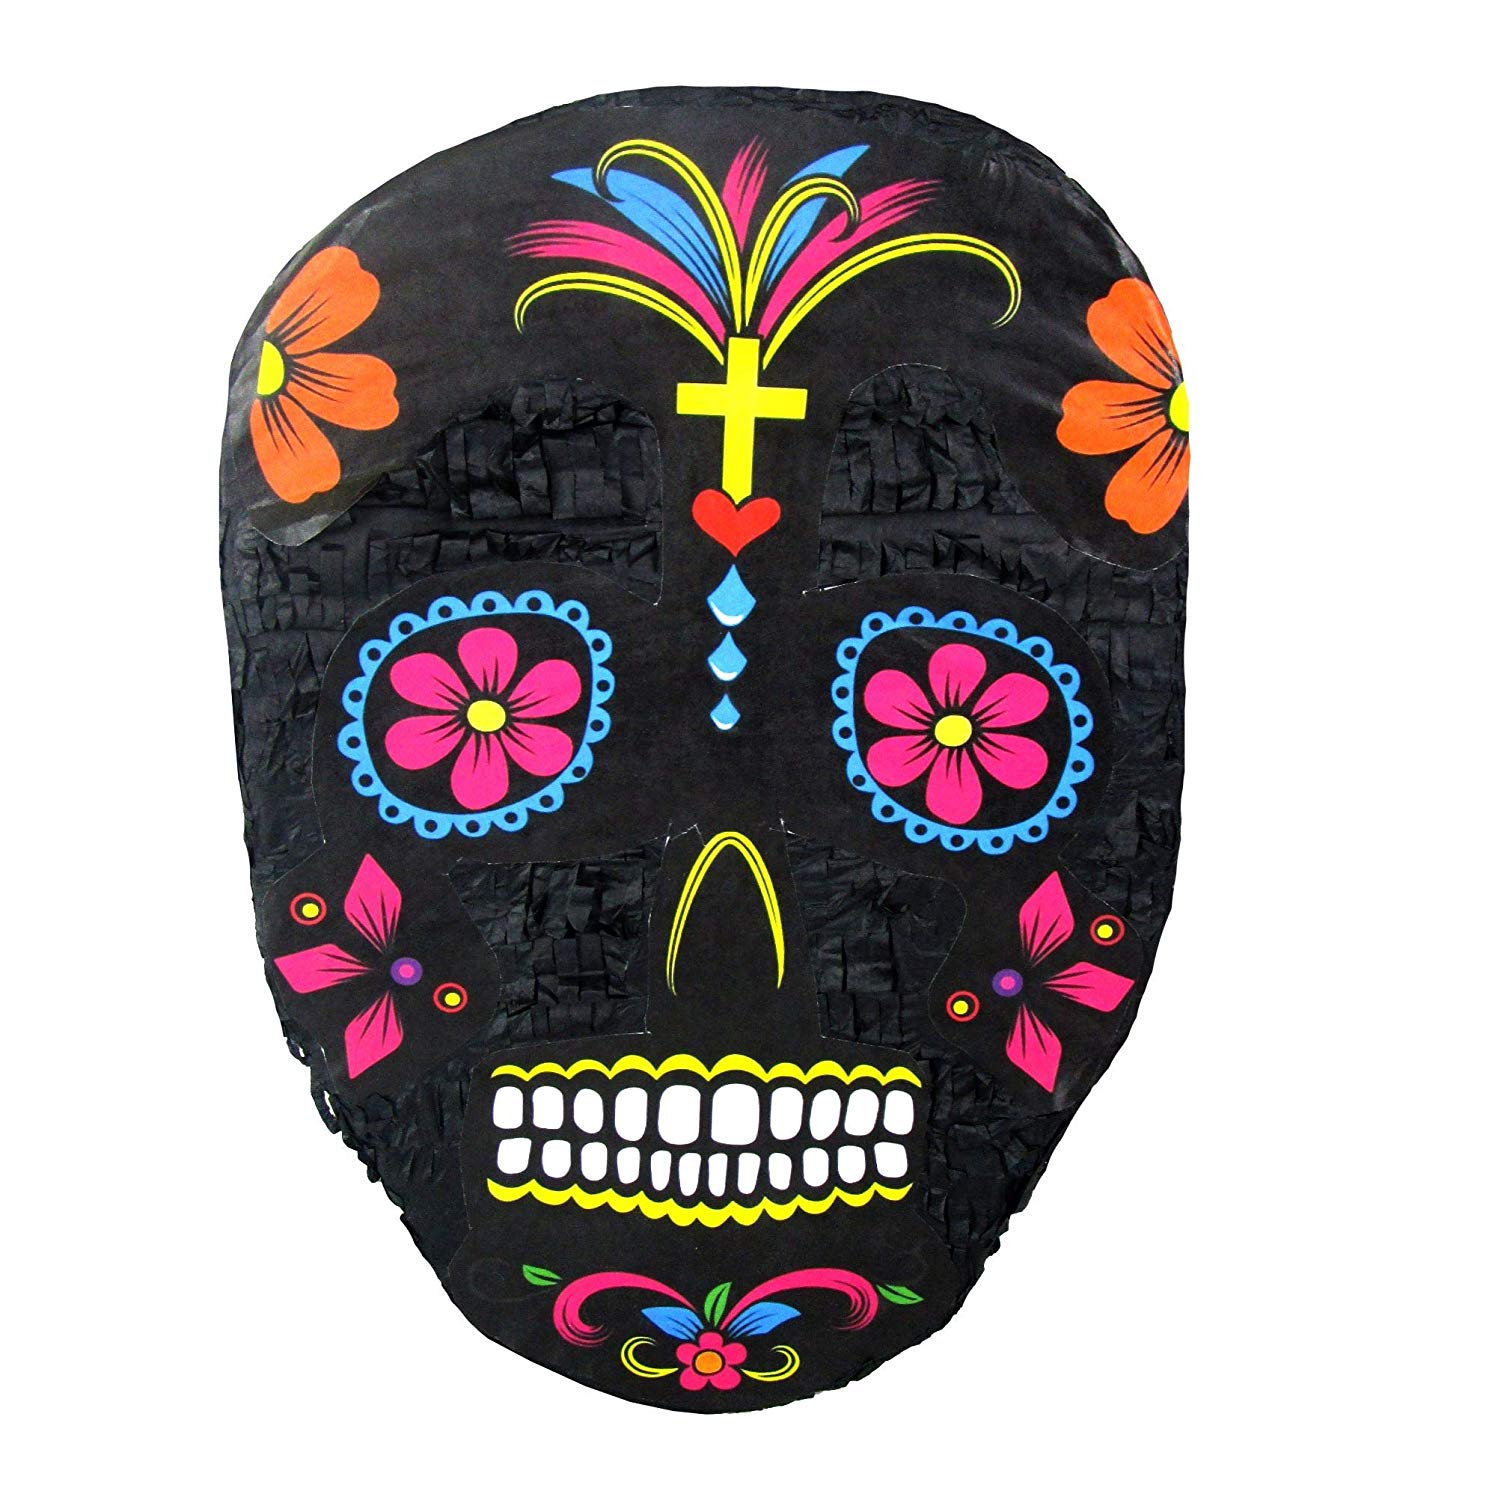 Black Sugar Skull Pinata, Day of the Dead Party Game, Halloween Prop and Decoration